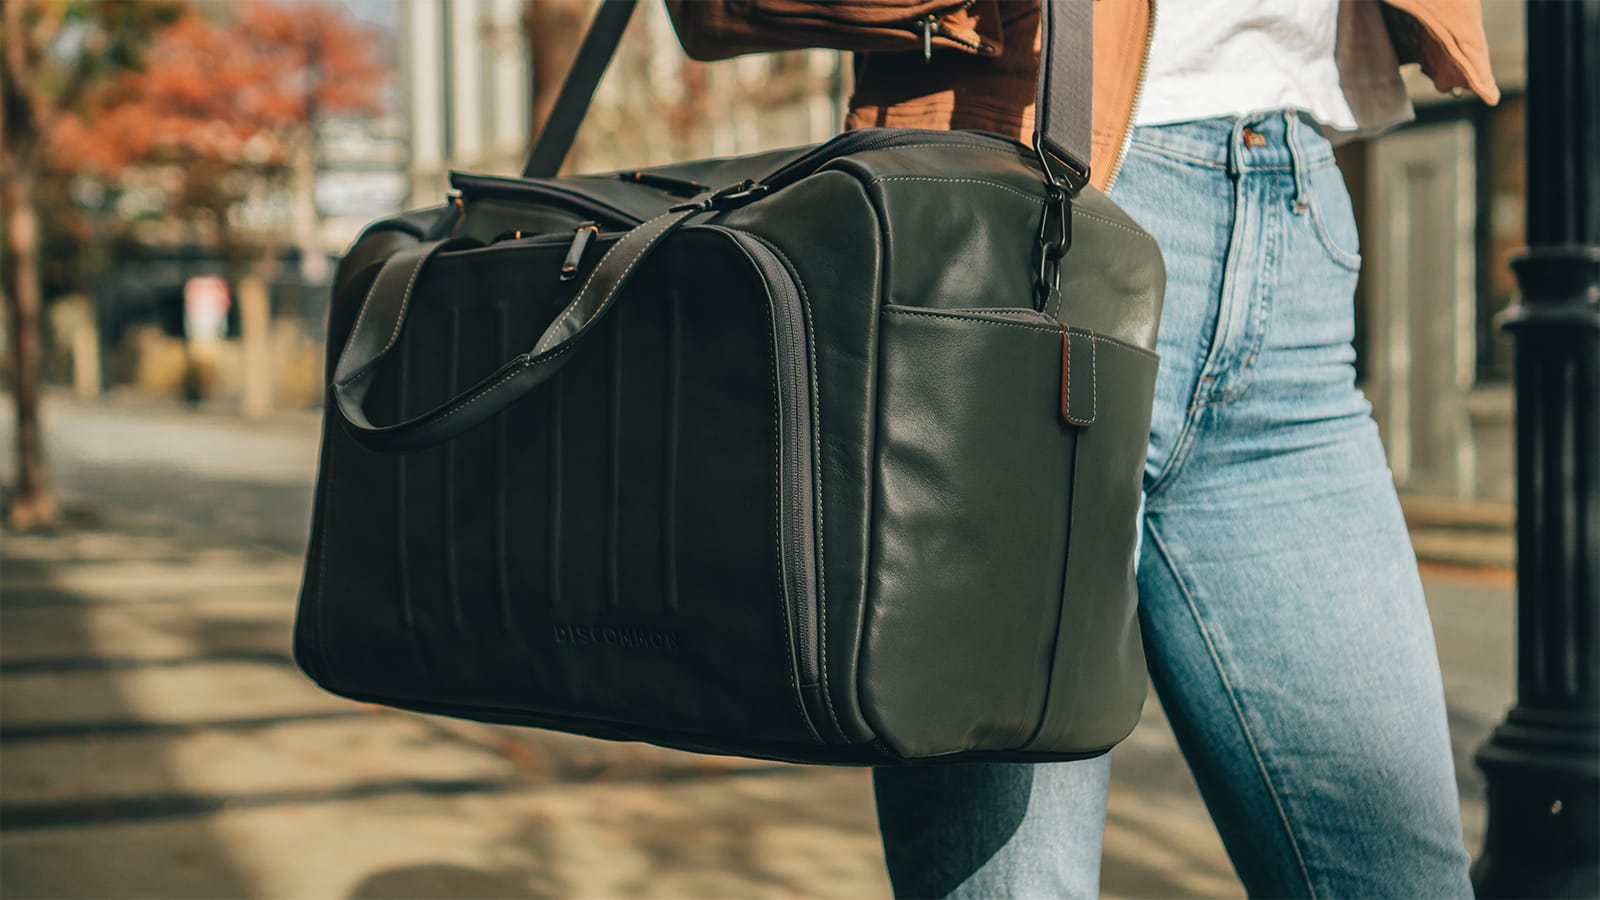 Discommon The Weekender duffle bag has pockets in just the right places